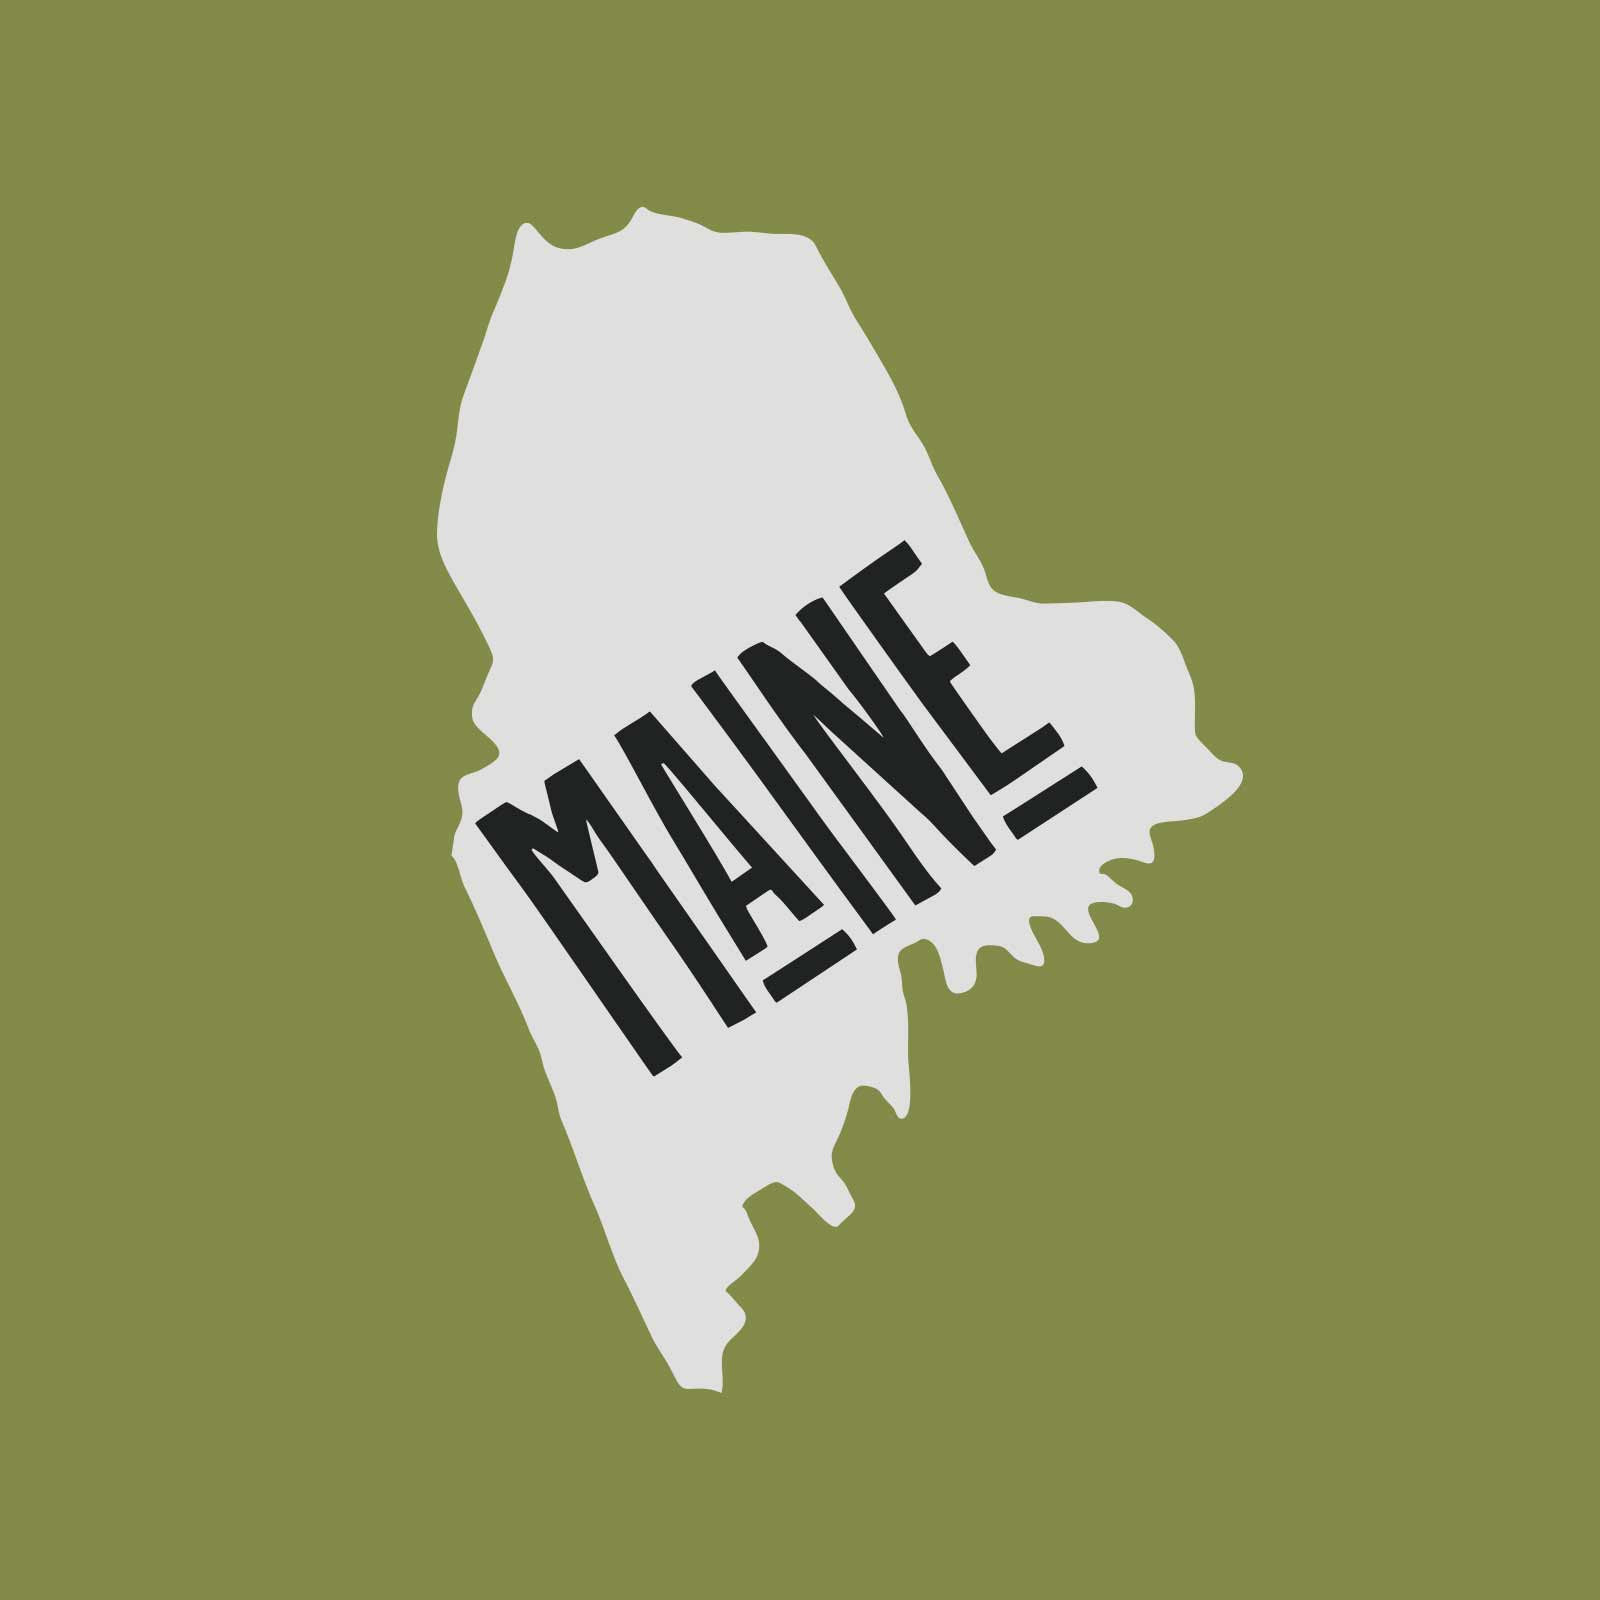 How to start a business in Maine